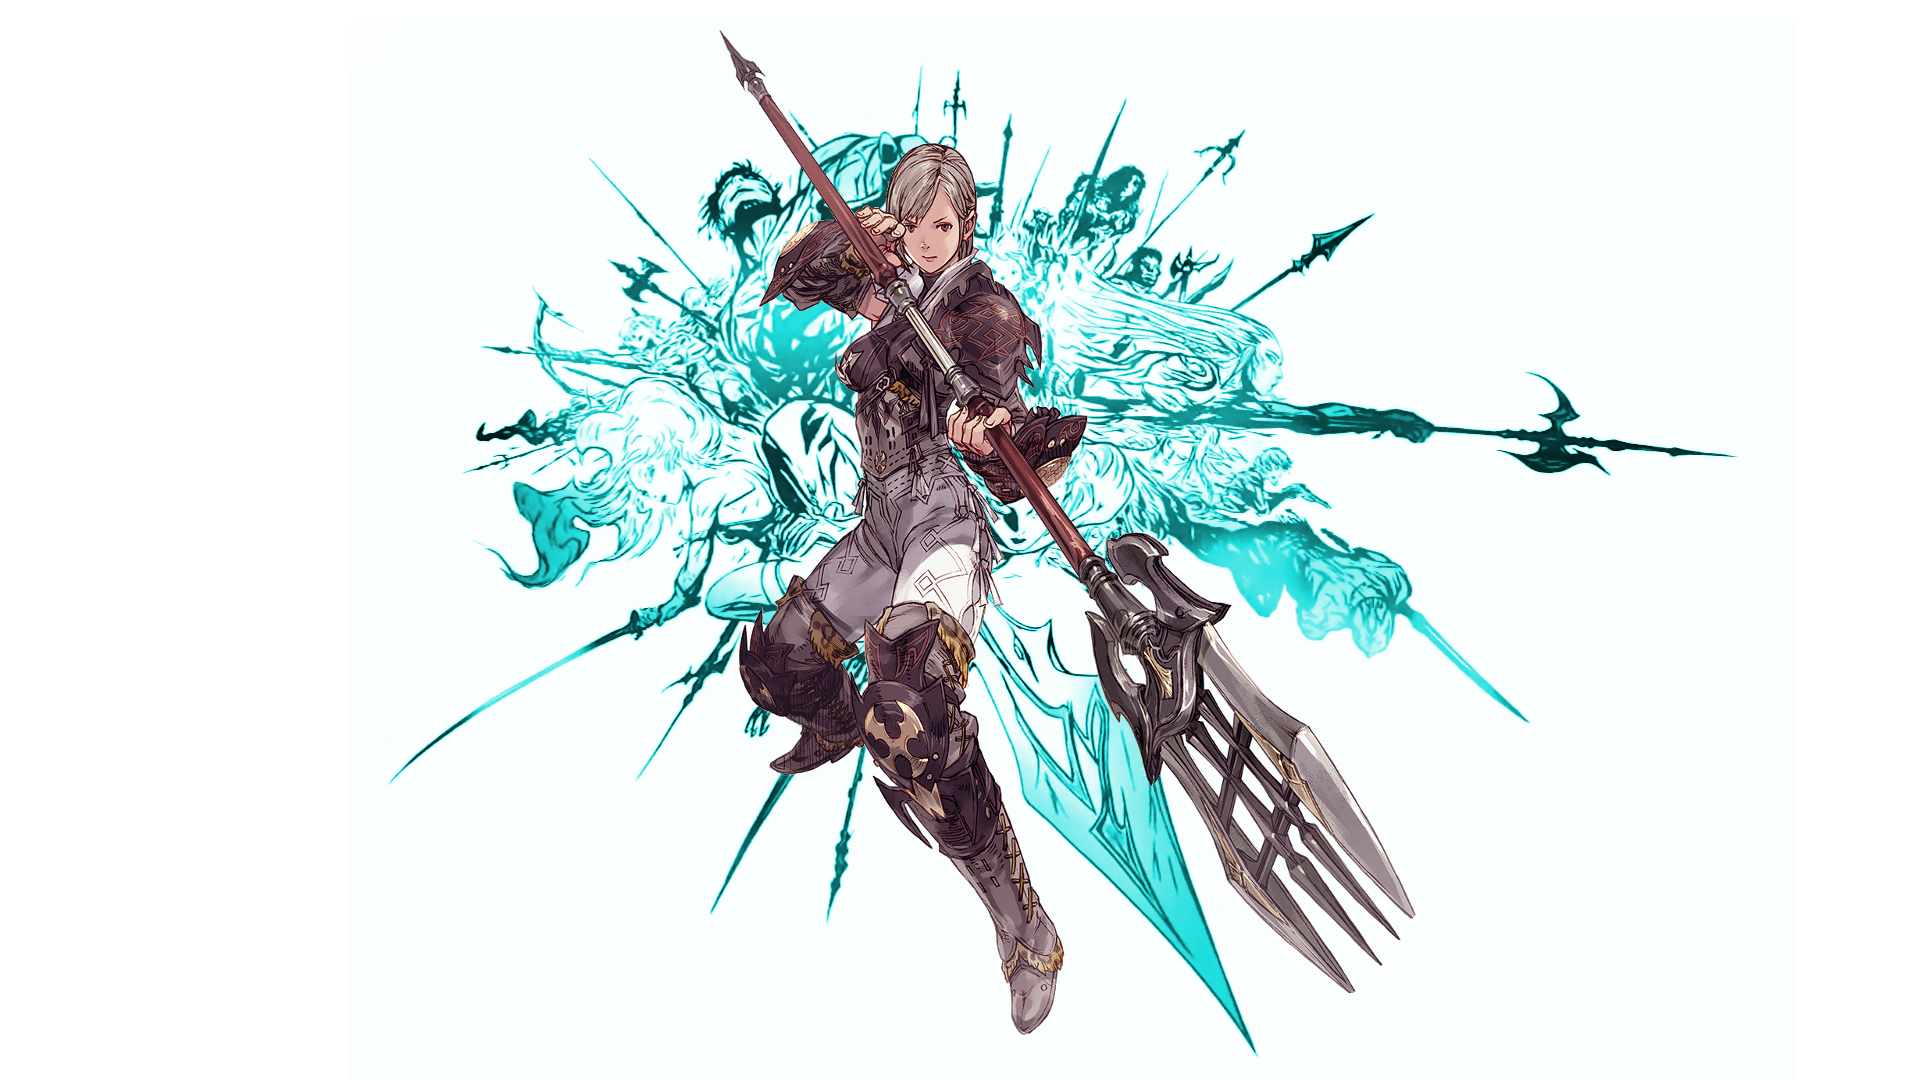 sonomaa ffxiv reddit from source wallpapers stole these xiv